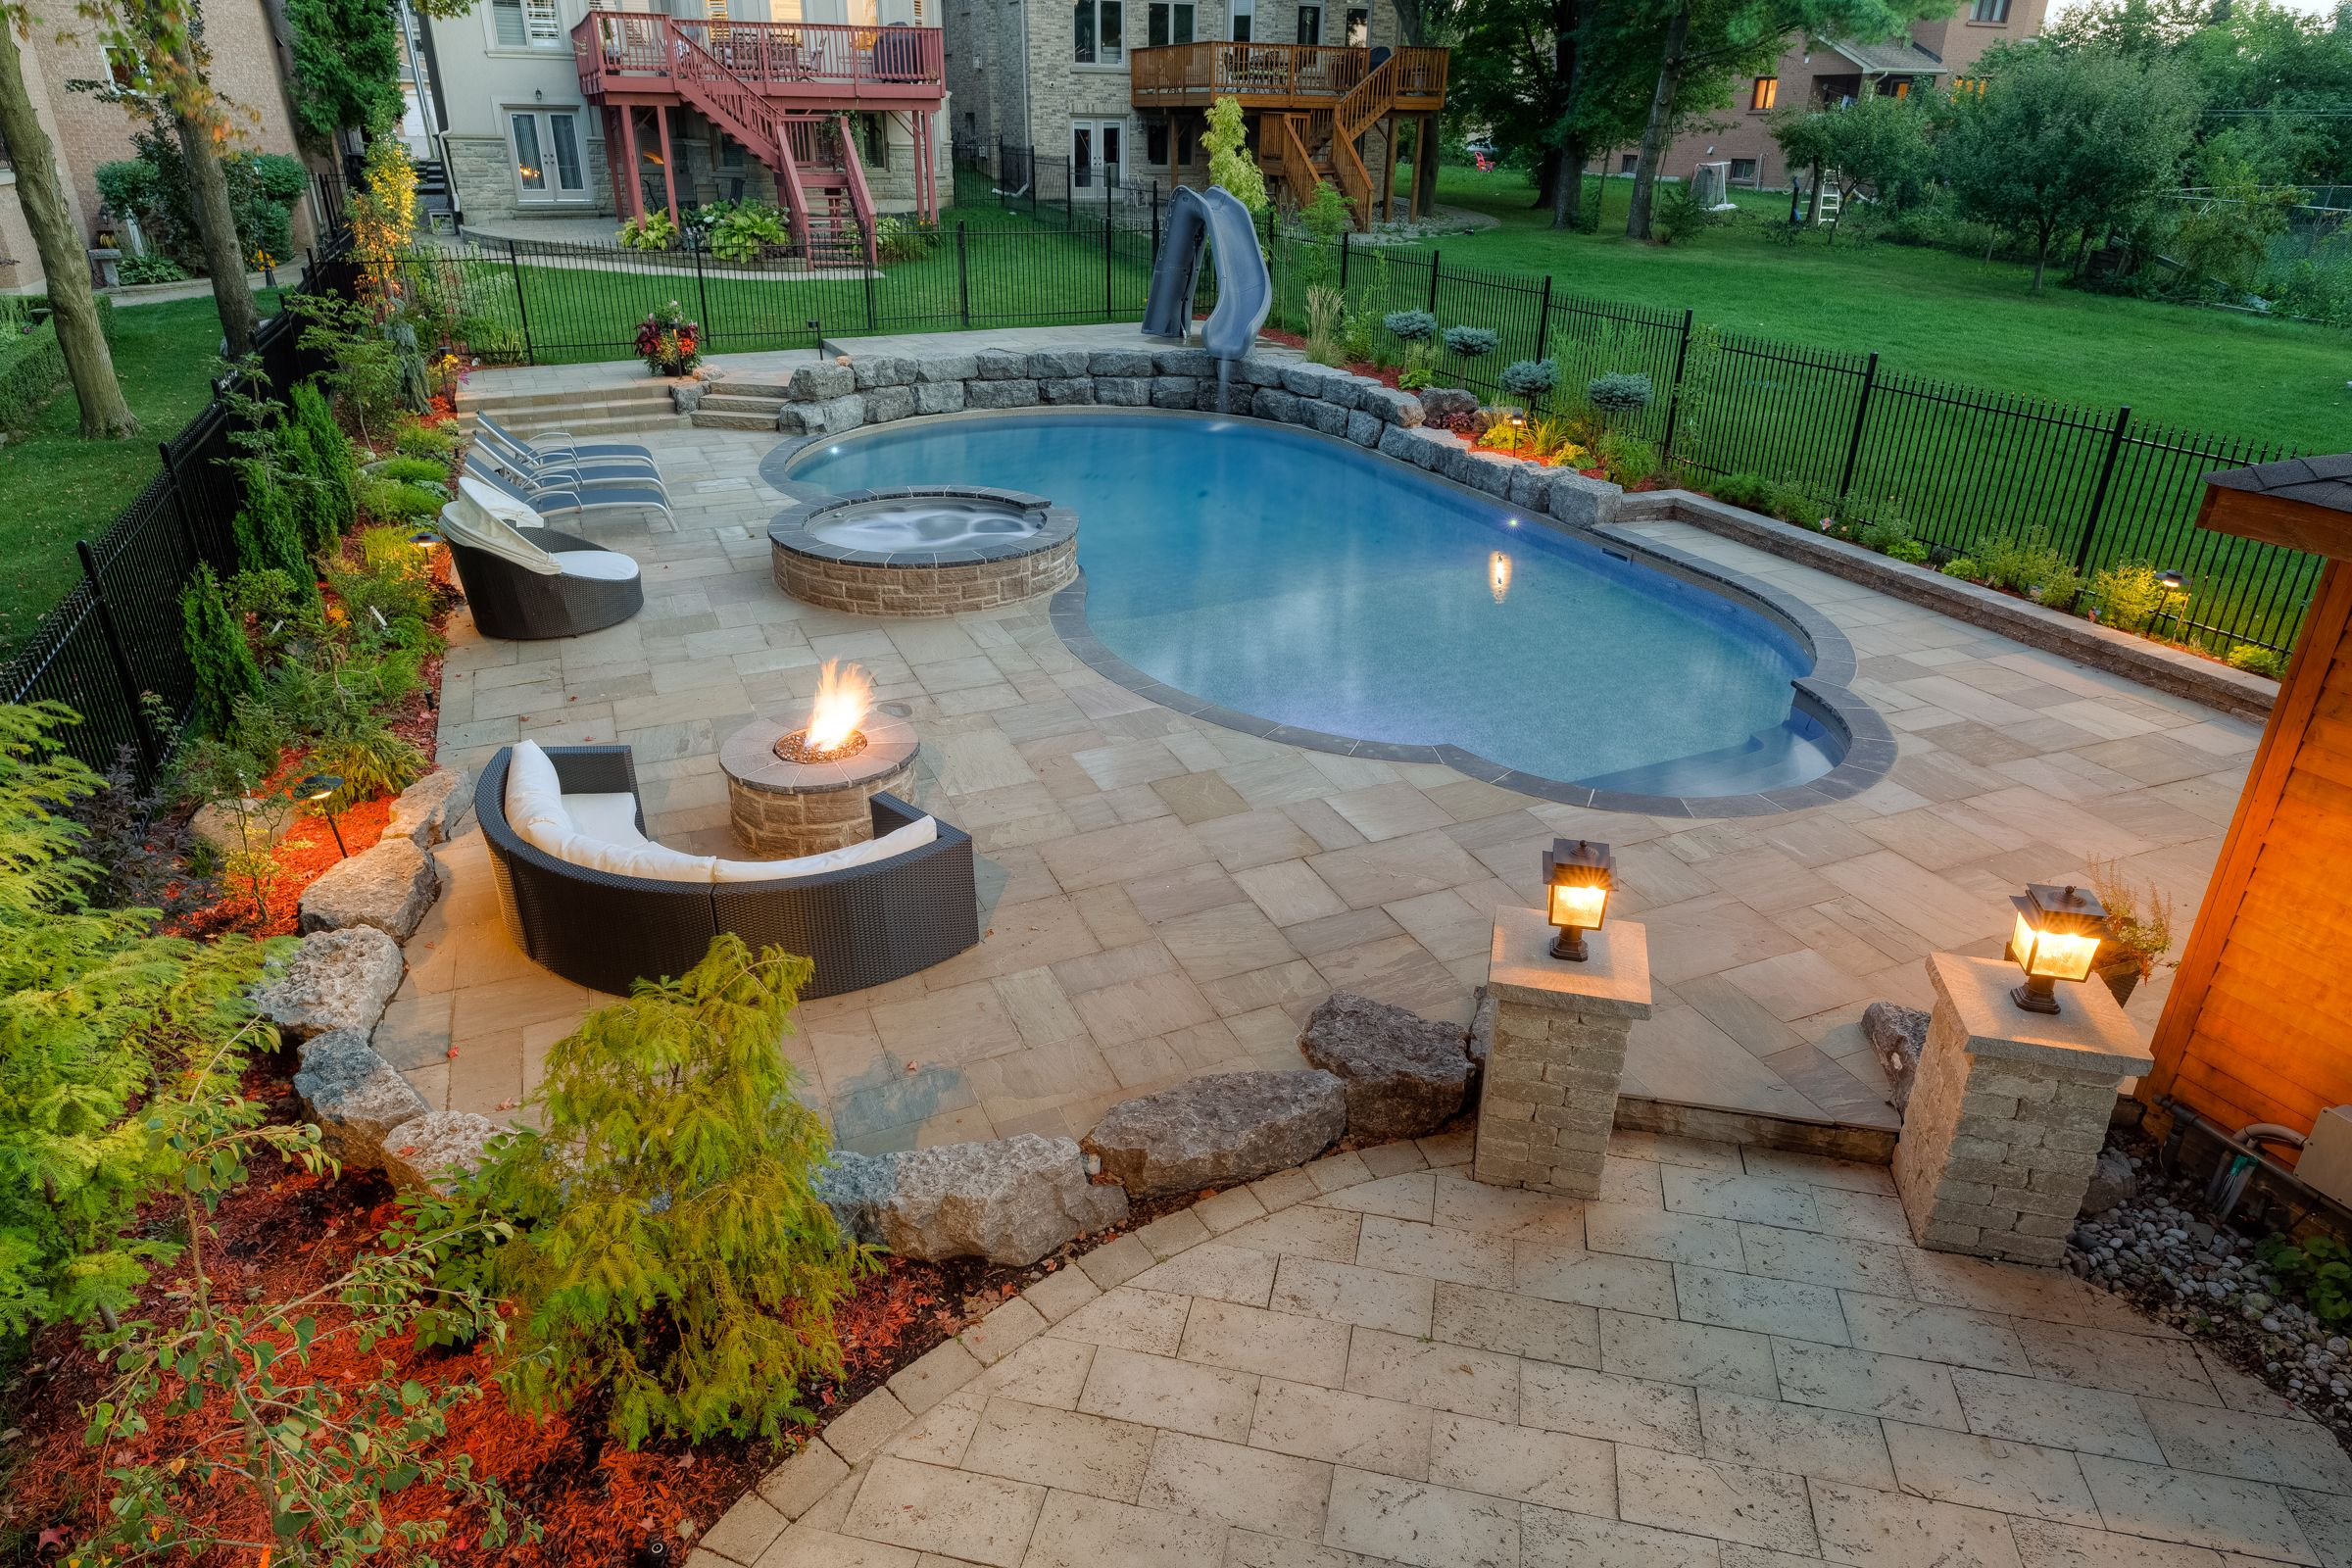 53 Best Swimming Pools Images On Pinterest - Pools, Swiming